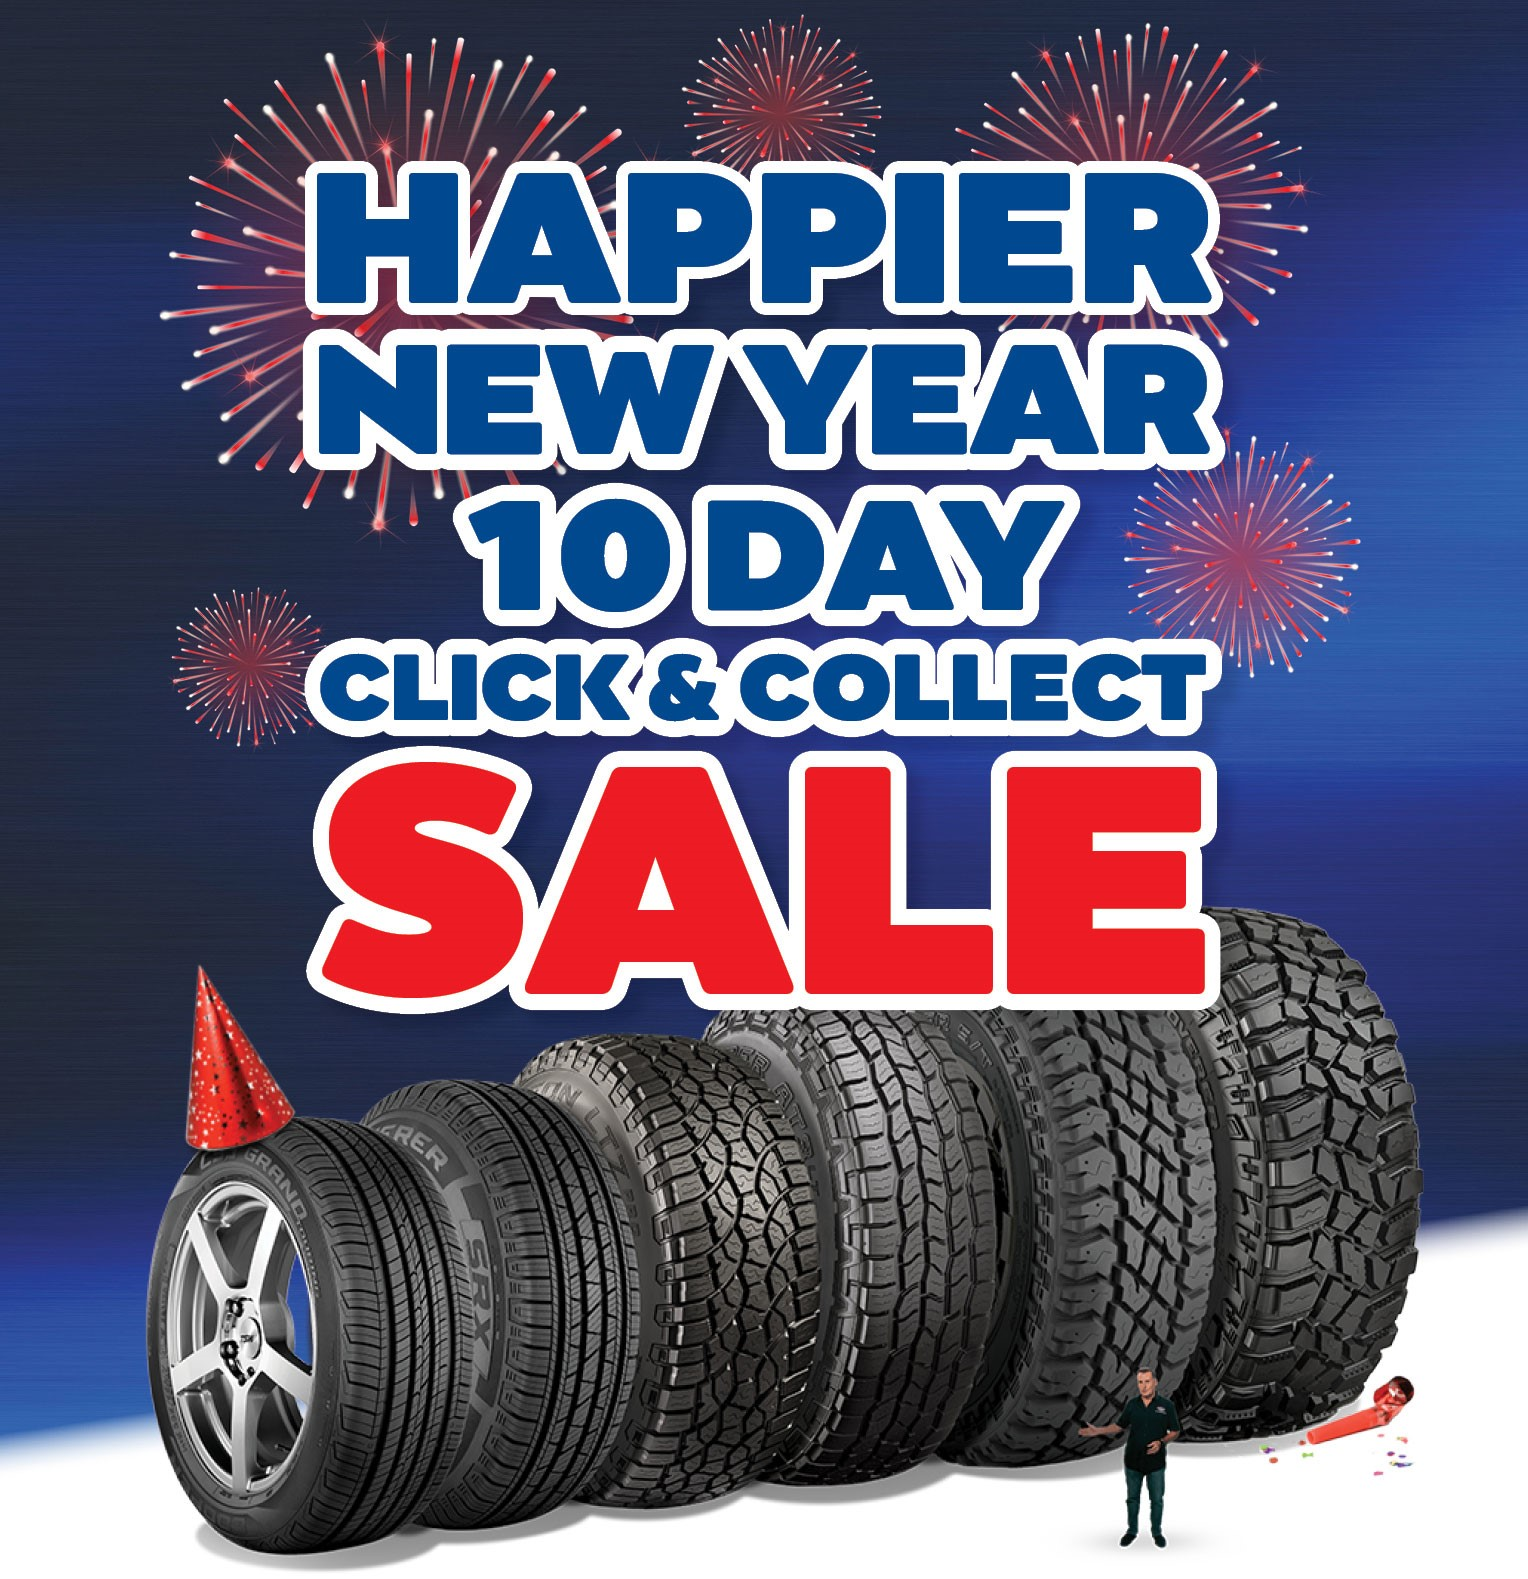 Didn't get what you wanted for Christmas? Cooper Tires have you covered